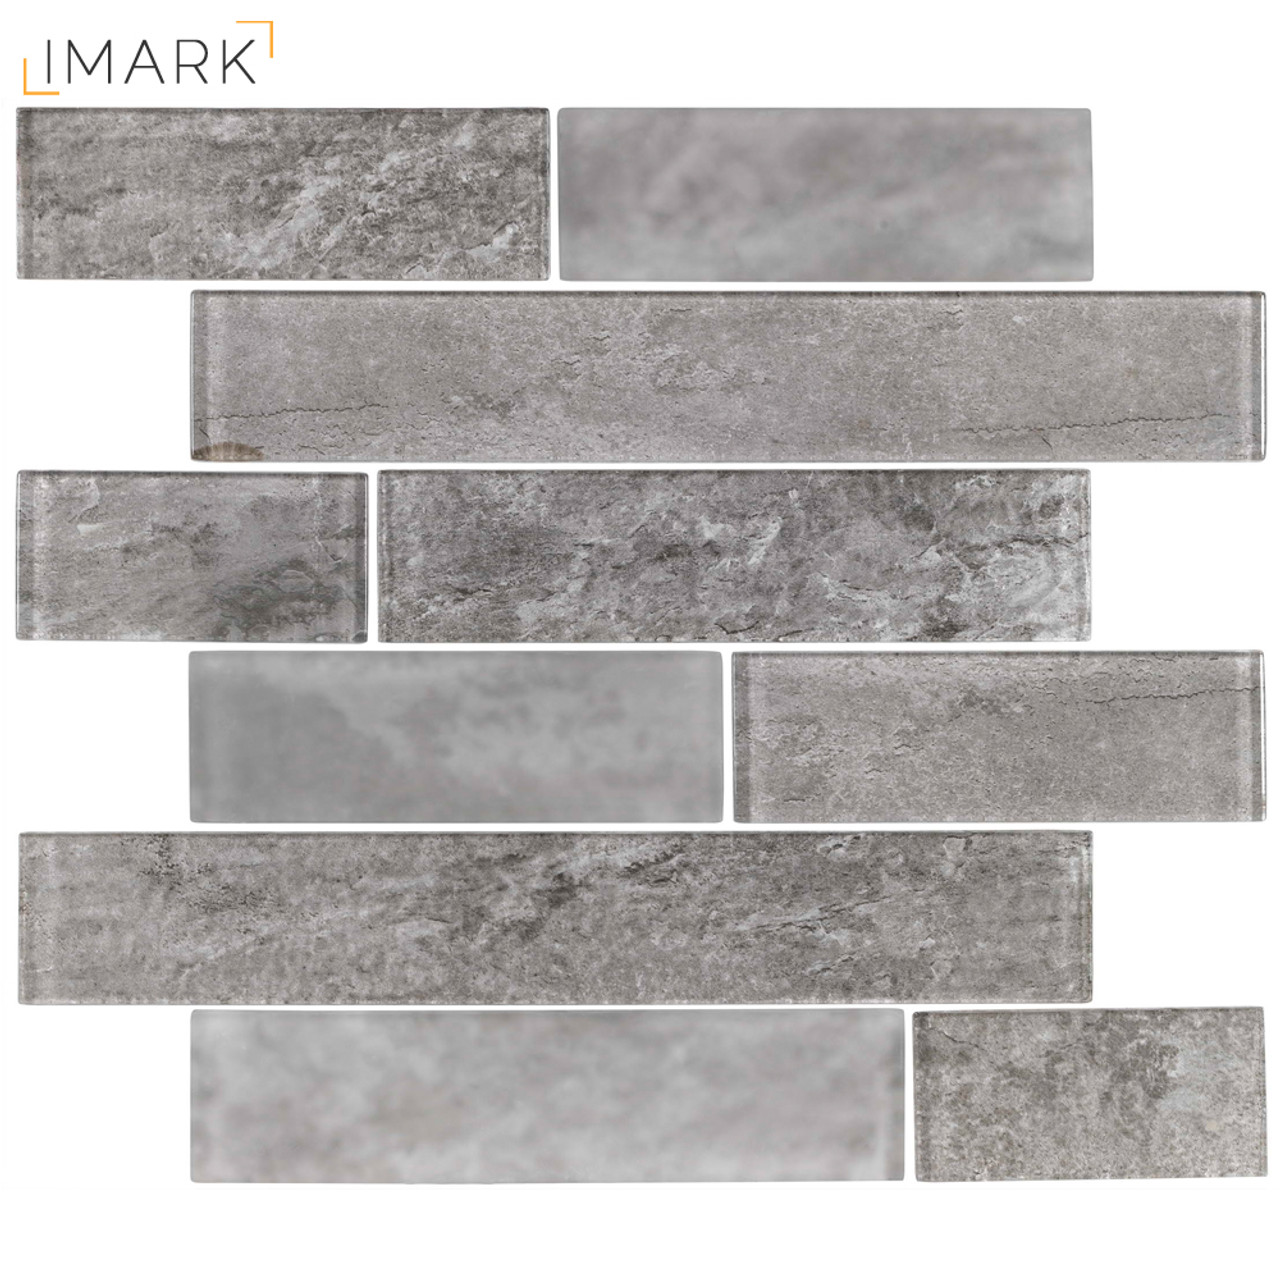 Loft ash grey subway tile patterns glass mosaic tilling gcp402 wholesale loft ash grey subway tile patterns glass mosaic tilling gcp402 dailygadgetfo Choice Image